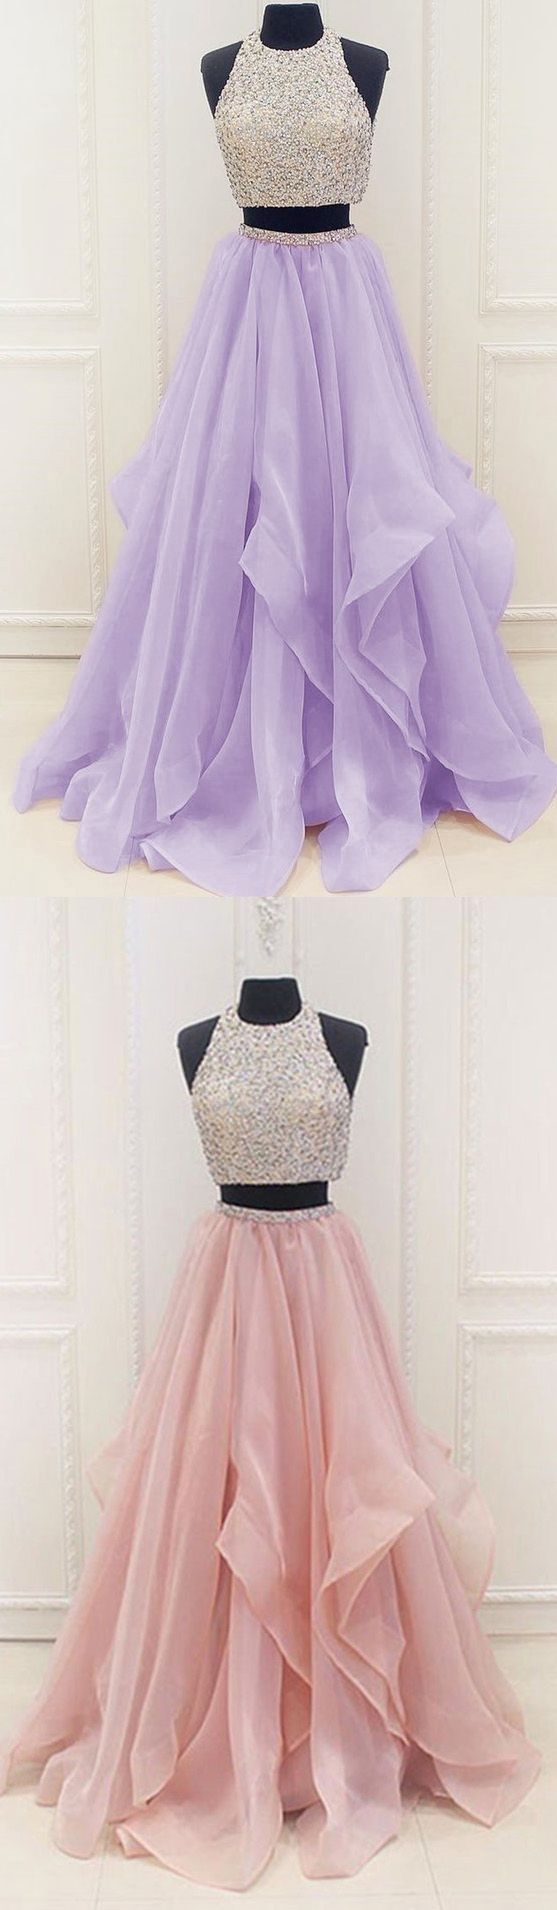 Two Pieces Prom Dress 2017, Halter Prom Dress, Ball Gown, Graduation Dresses, Formal Dress For Teens,PD455826  #fashion #shopping #dresses #eveningdresses #2018prom